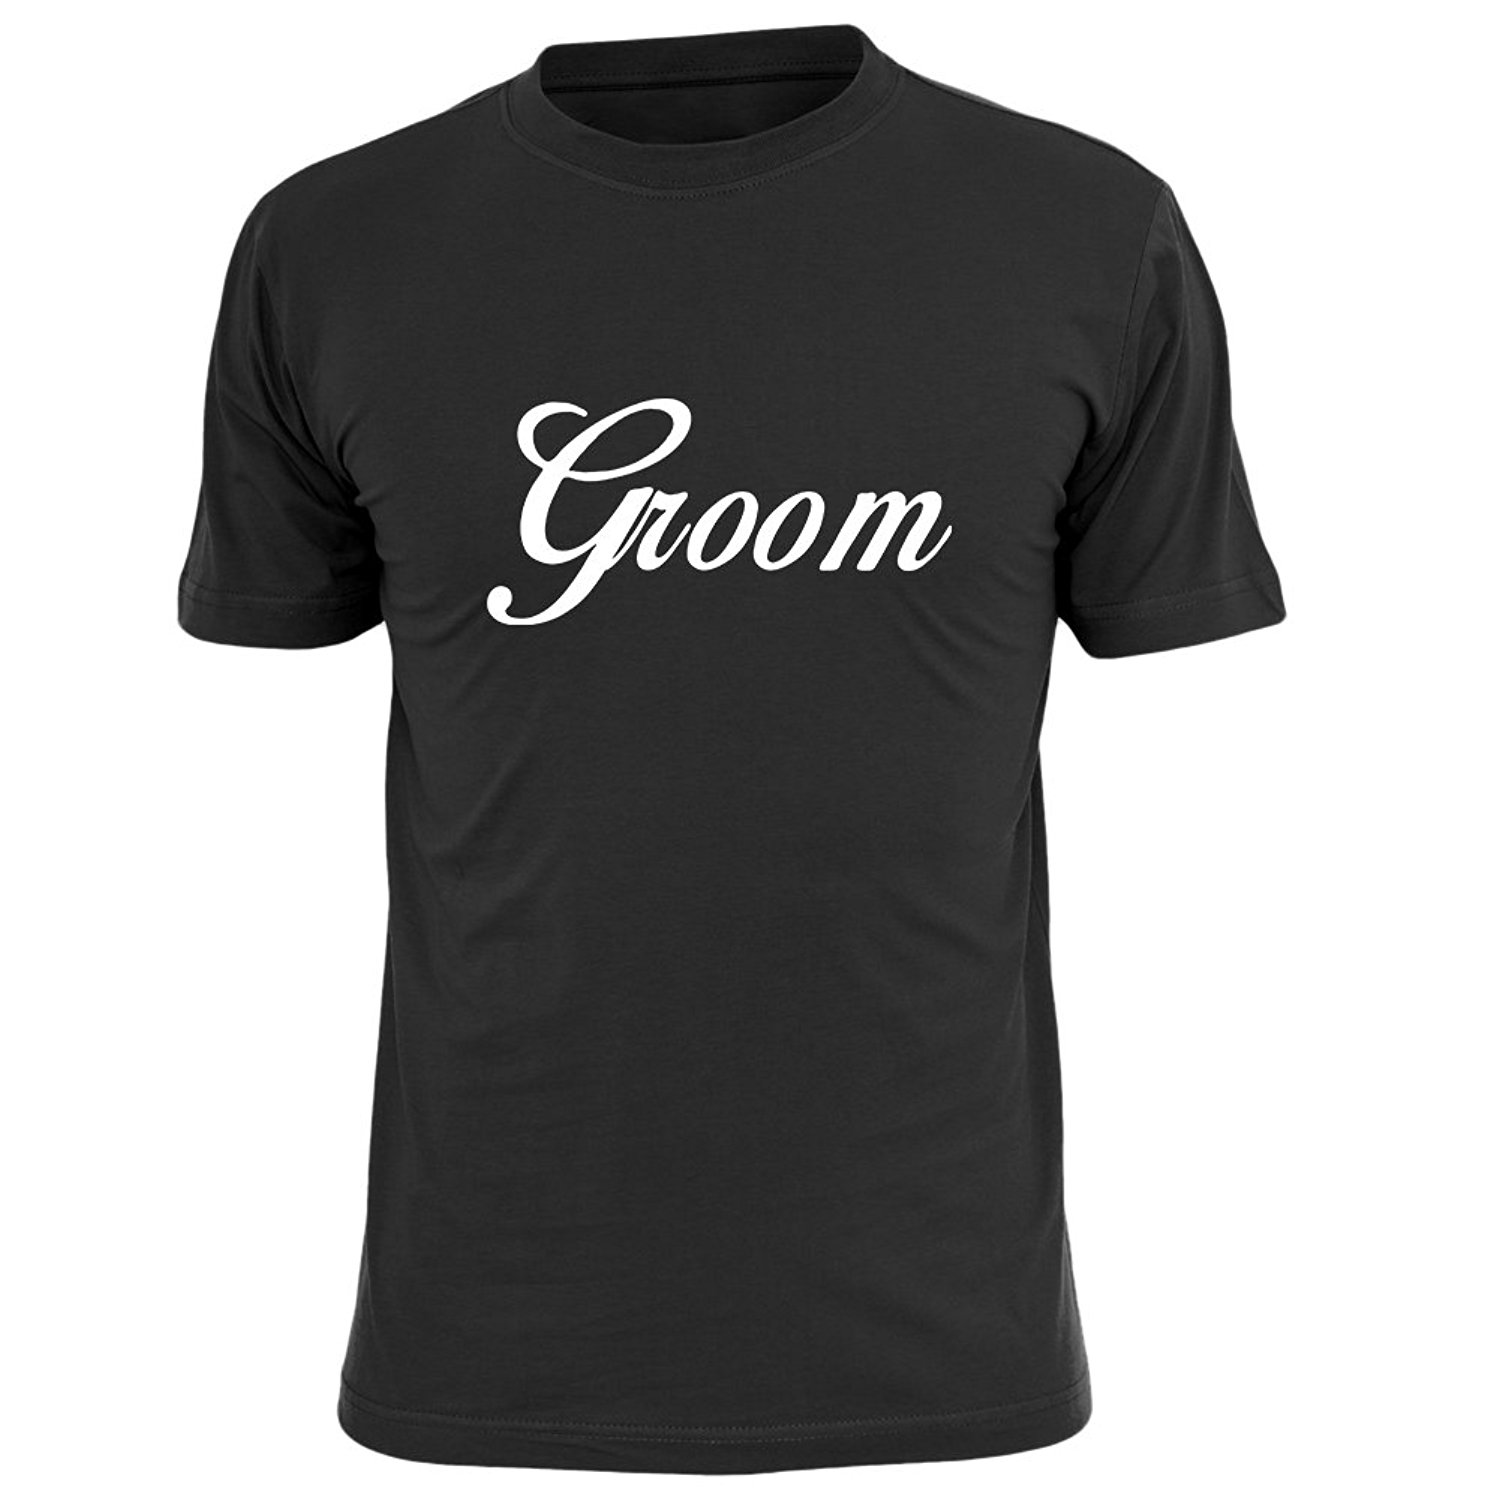 OKnown Men's T-Shirt Groom Short Sleve Cool Graphics Tees Top Harajuku Short Sleeve Shirt New 2018 Fashion Hot Tshirt